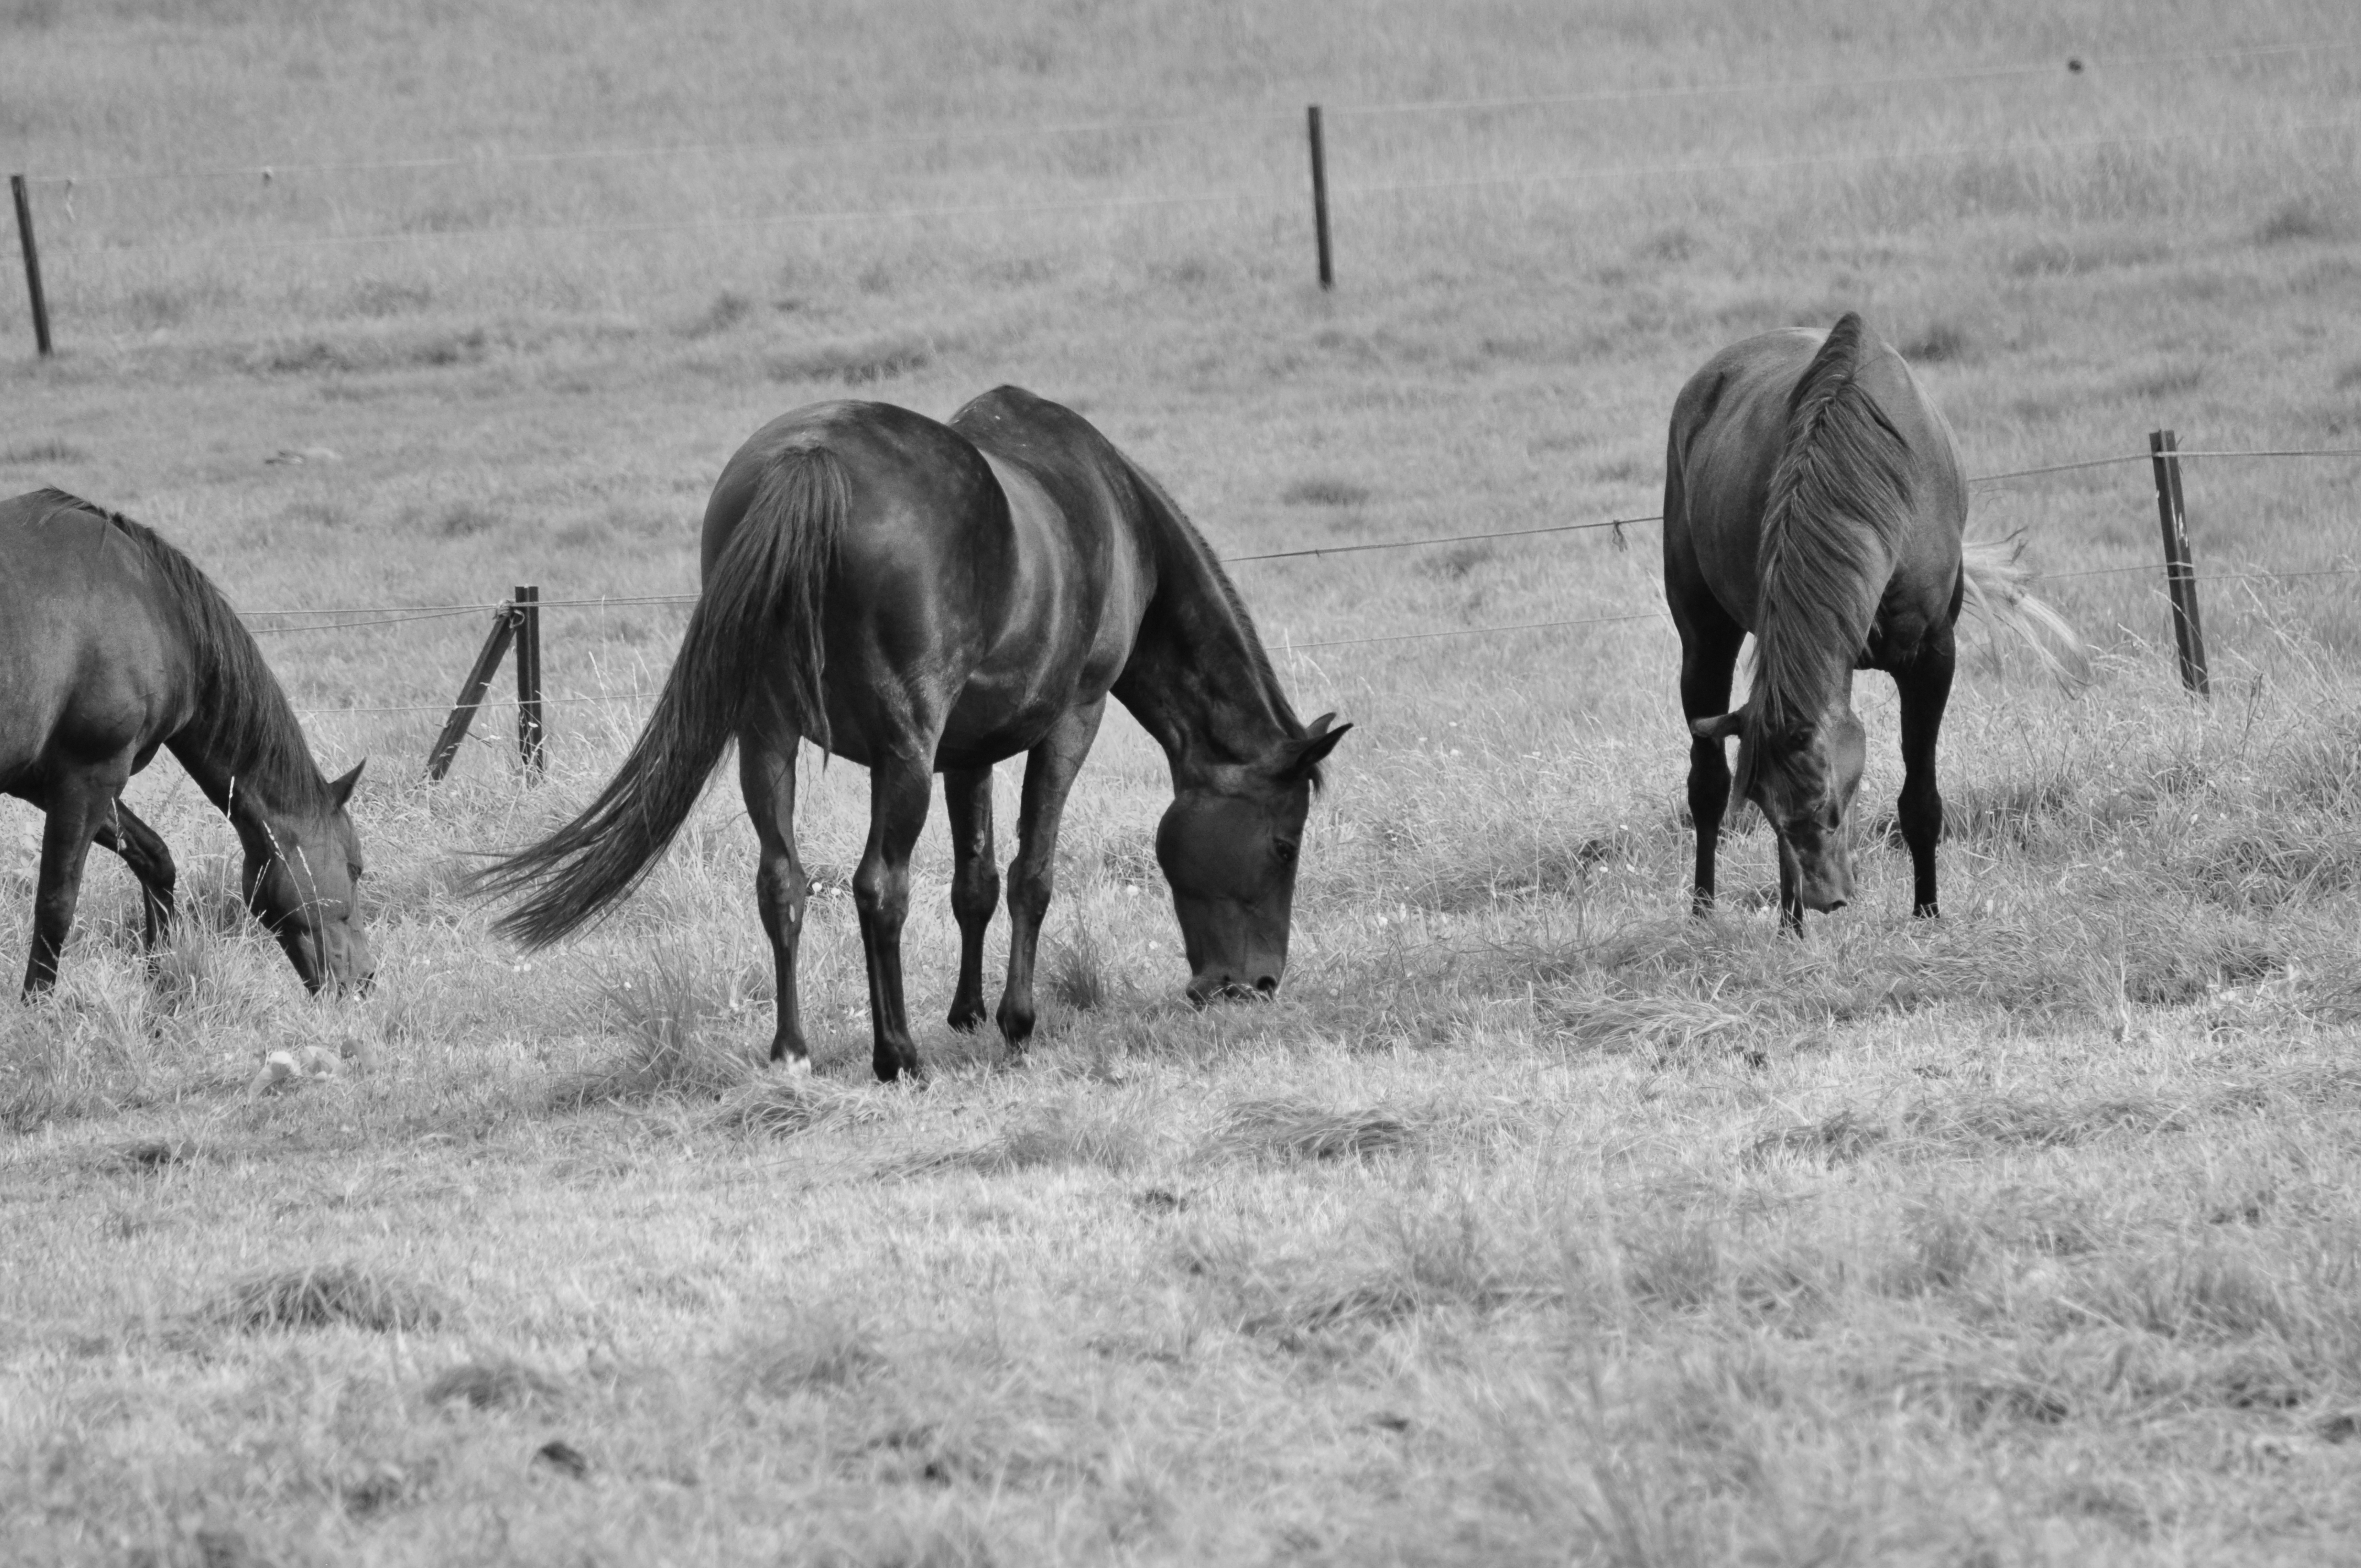 Black Horses Grazing Cc0 Photo